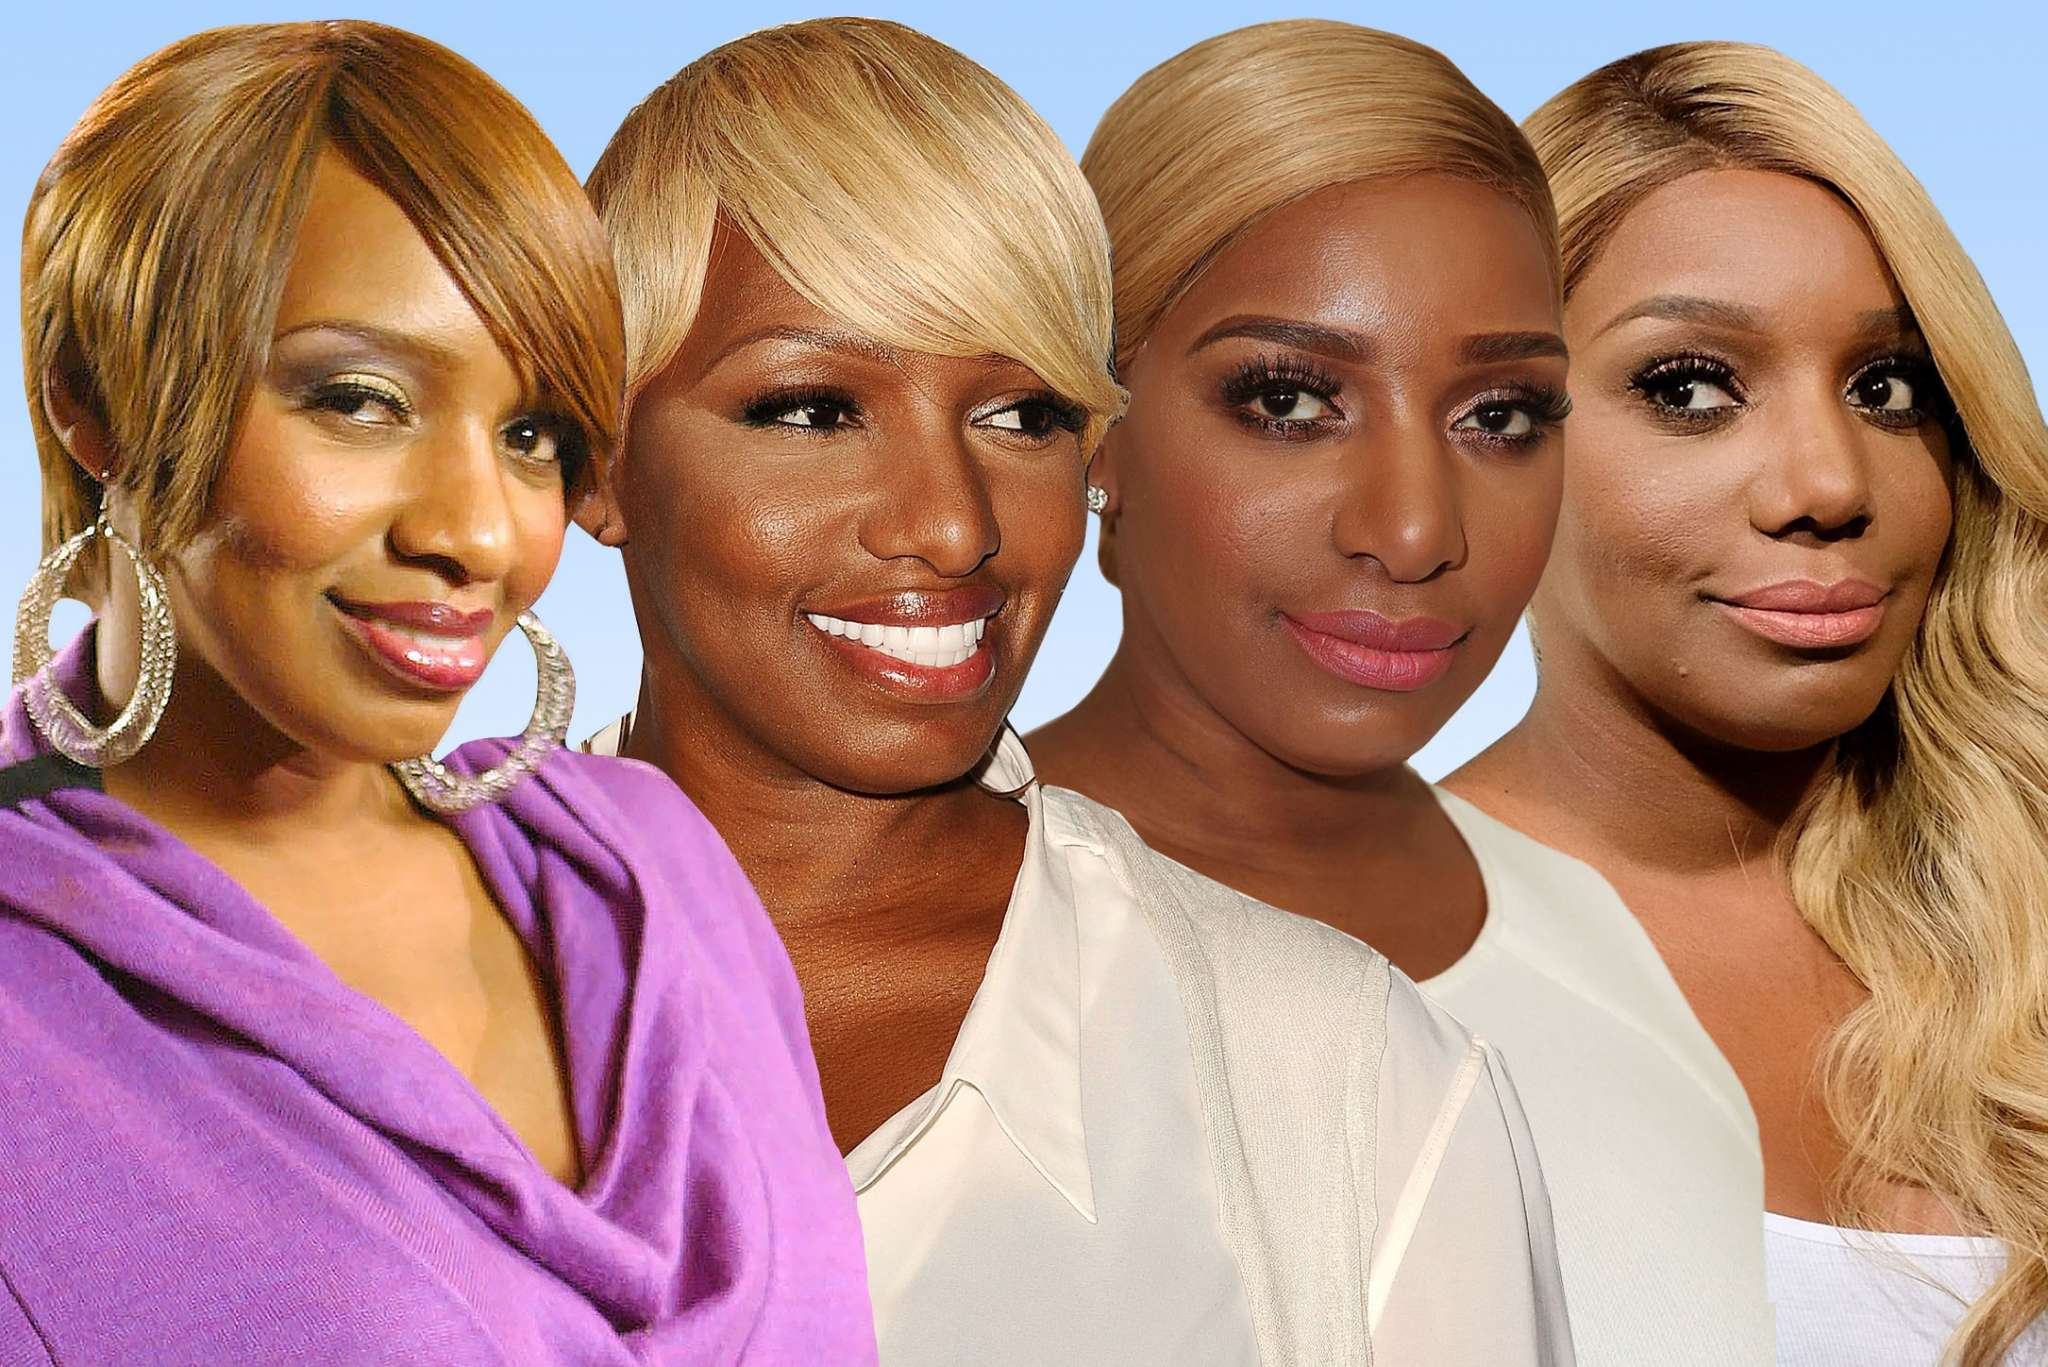 NeNe Leakes' Latest Photos Have Fans Saying She Looks Incredible: 'The Nose Has Given You So Much Confidence'